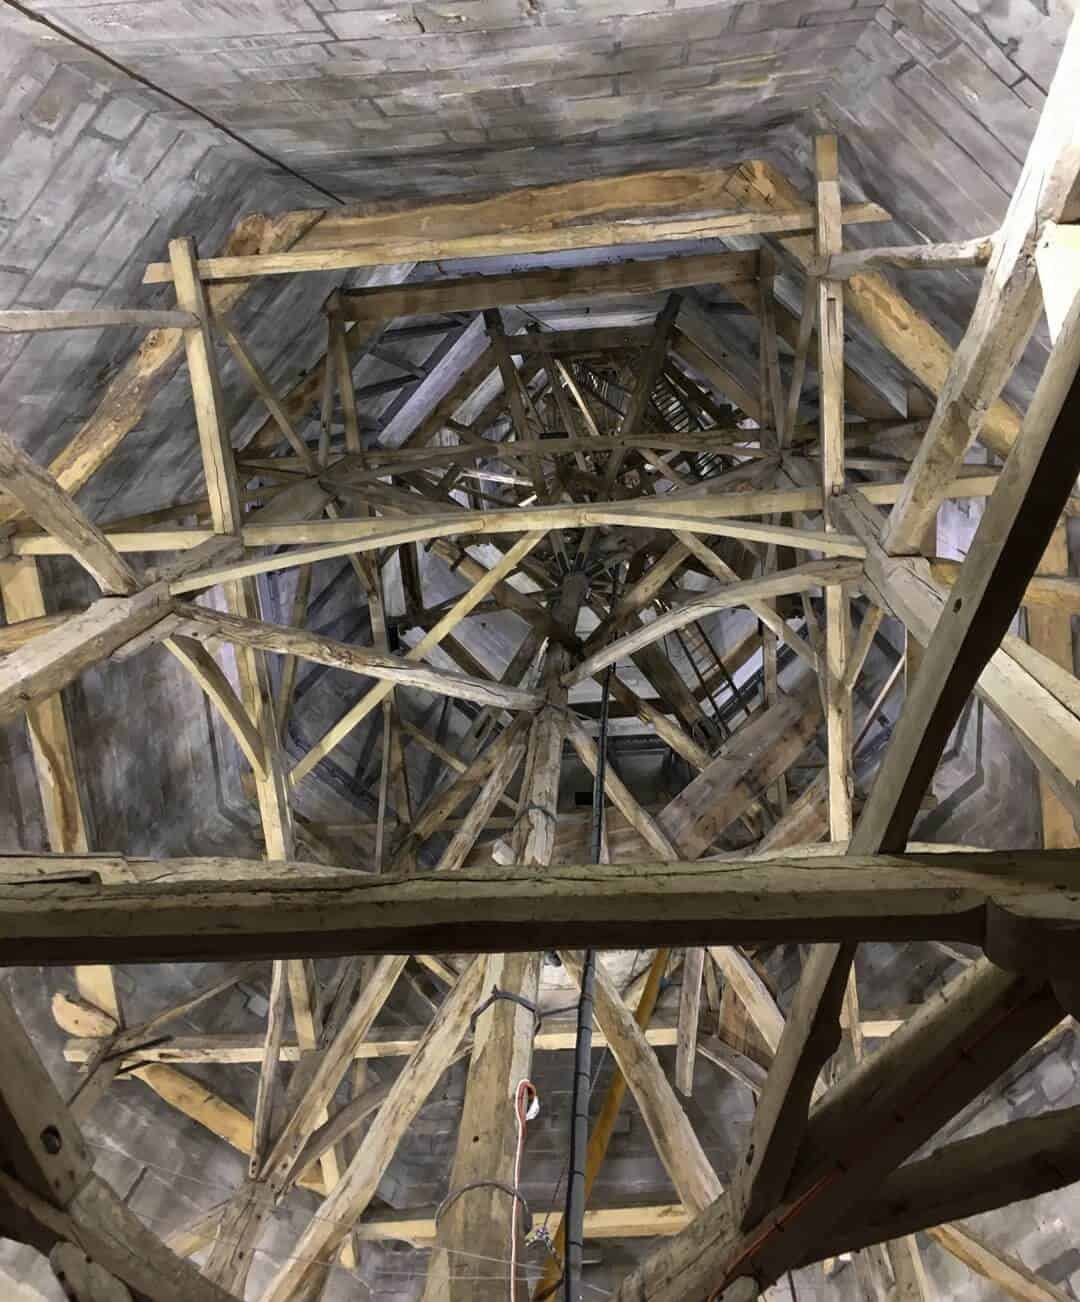 Looking up into the interior of the spire at Salisbury Cathedral.